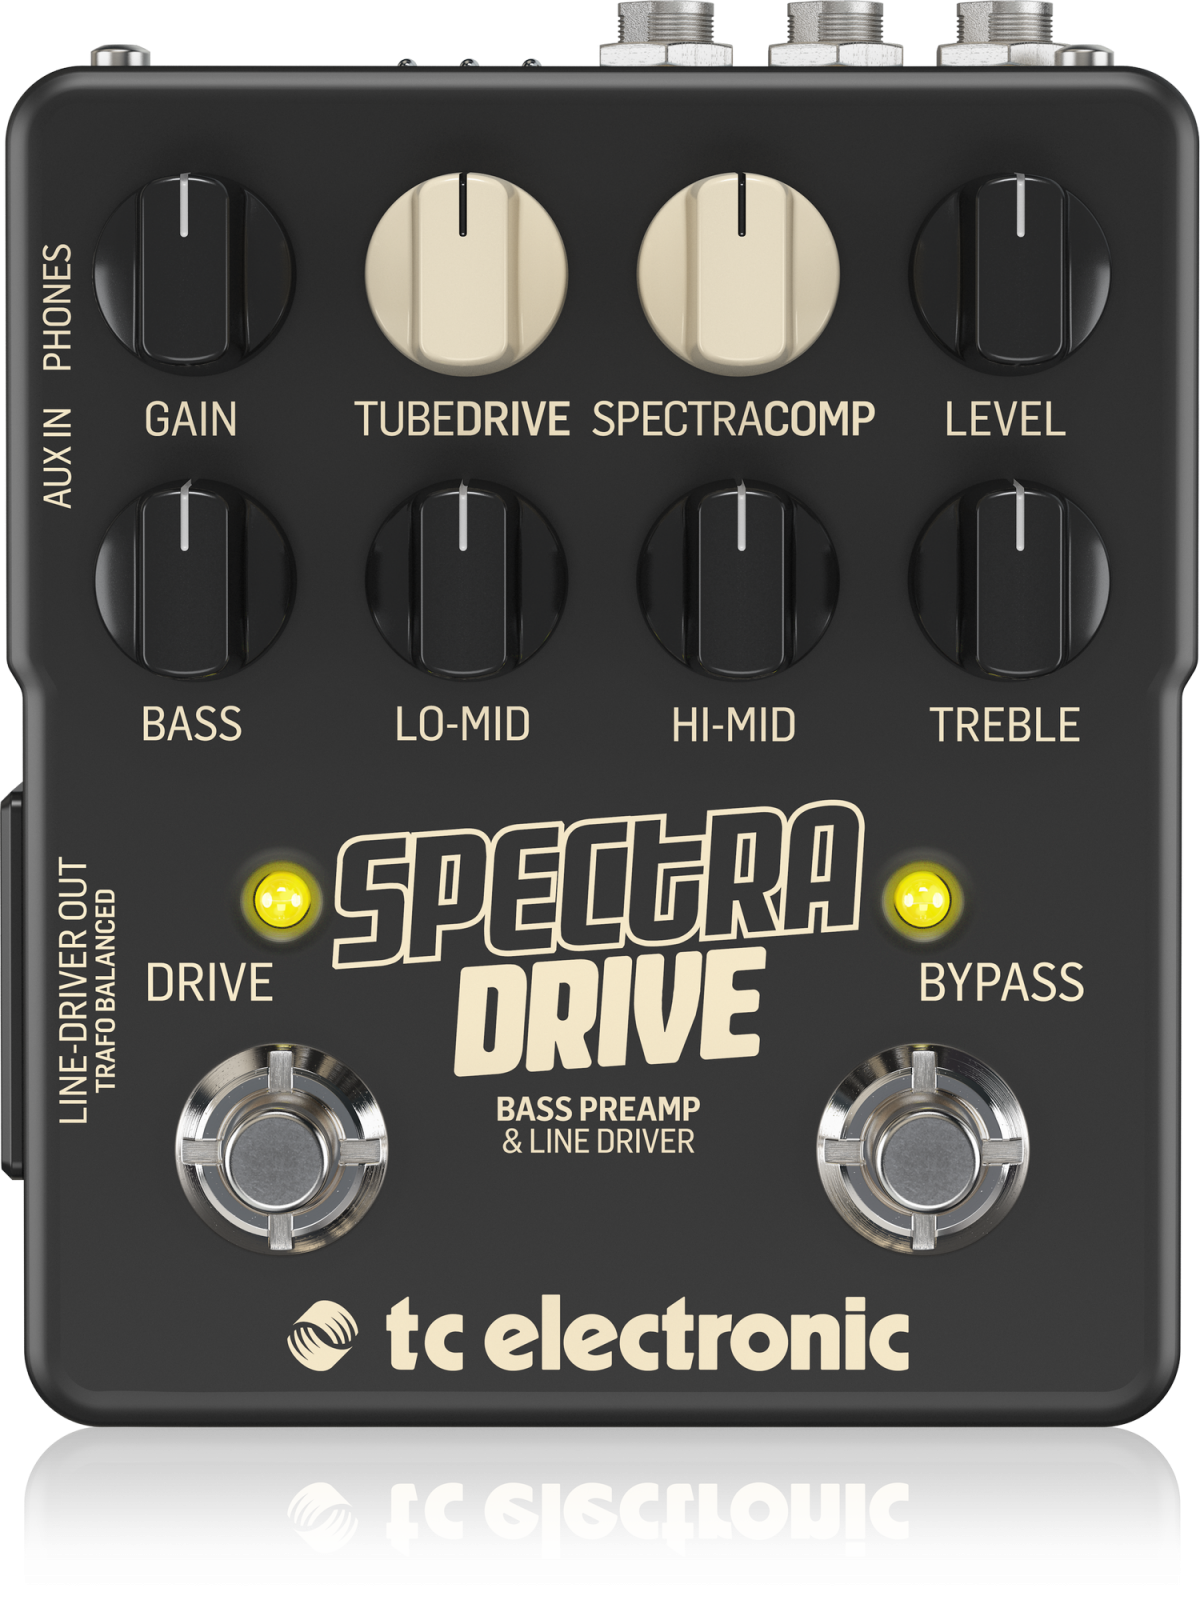 TC ELECTRONIC SPECTRADRIVE, HIGH-QUALITY BASS PREAMP AND DRIVE PEDAL WITH BUILT-IN TUBEDRIVE AND SPECTRACOMP TONEPRINTS